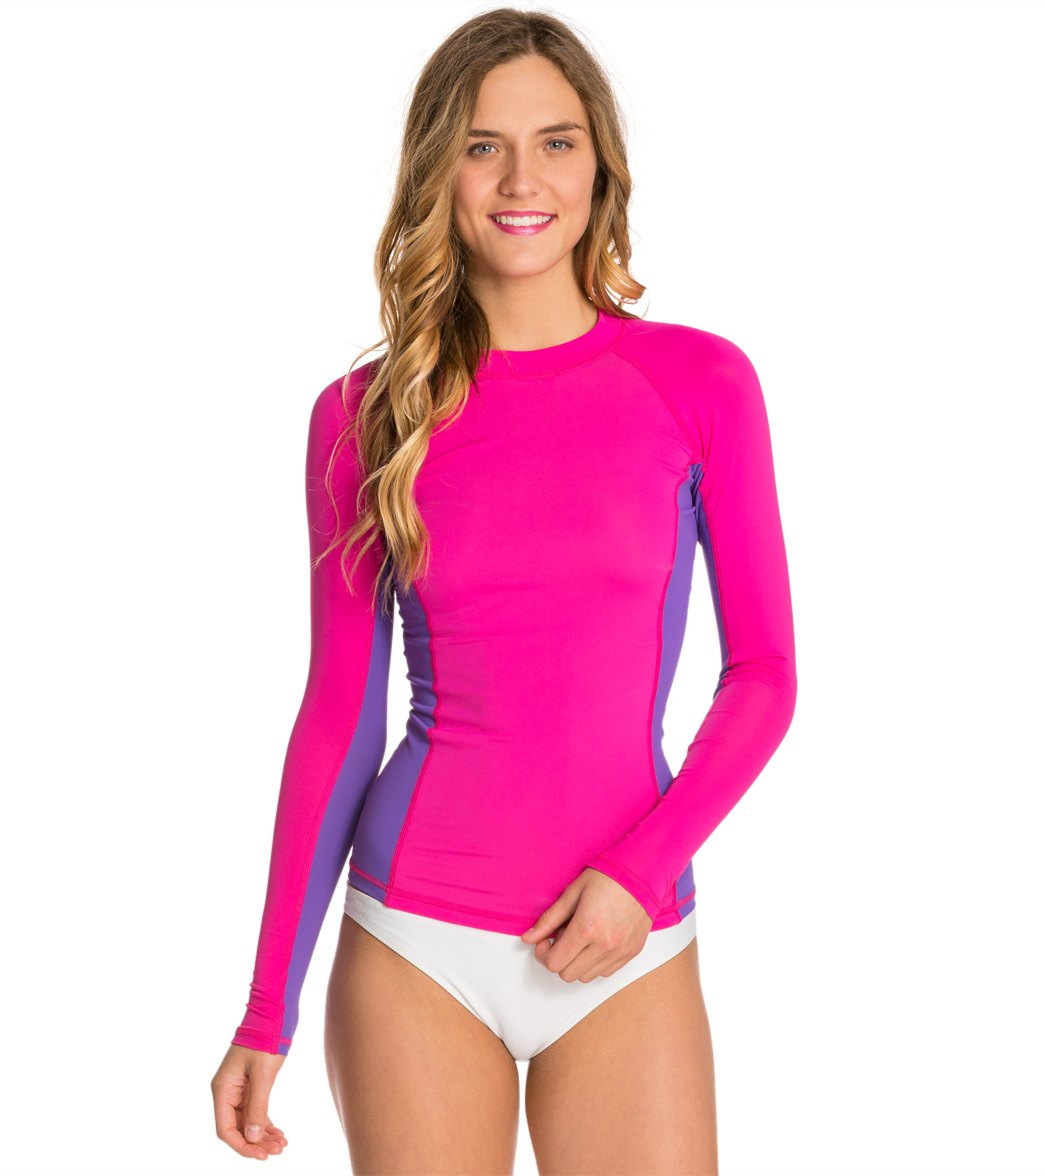 157f23d8208 Sporti Women s L S UPF 50+ Sport Fit Rash Guard at SwimOutlet.com